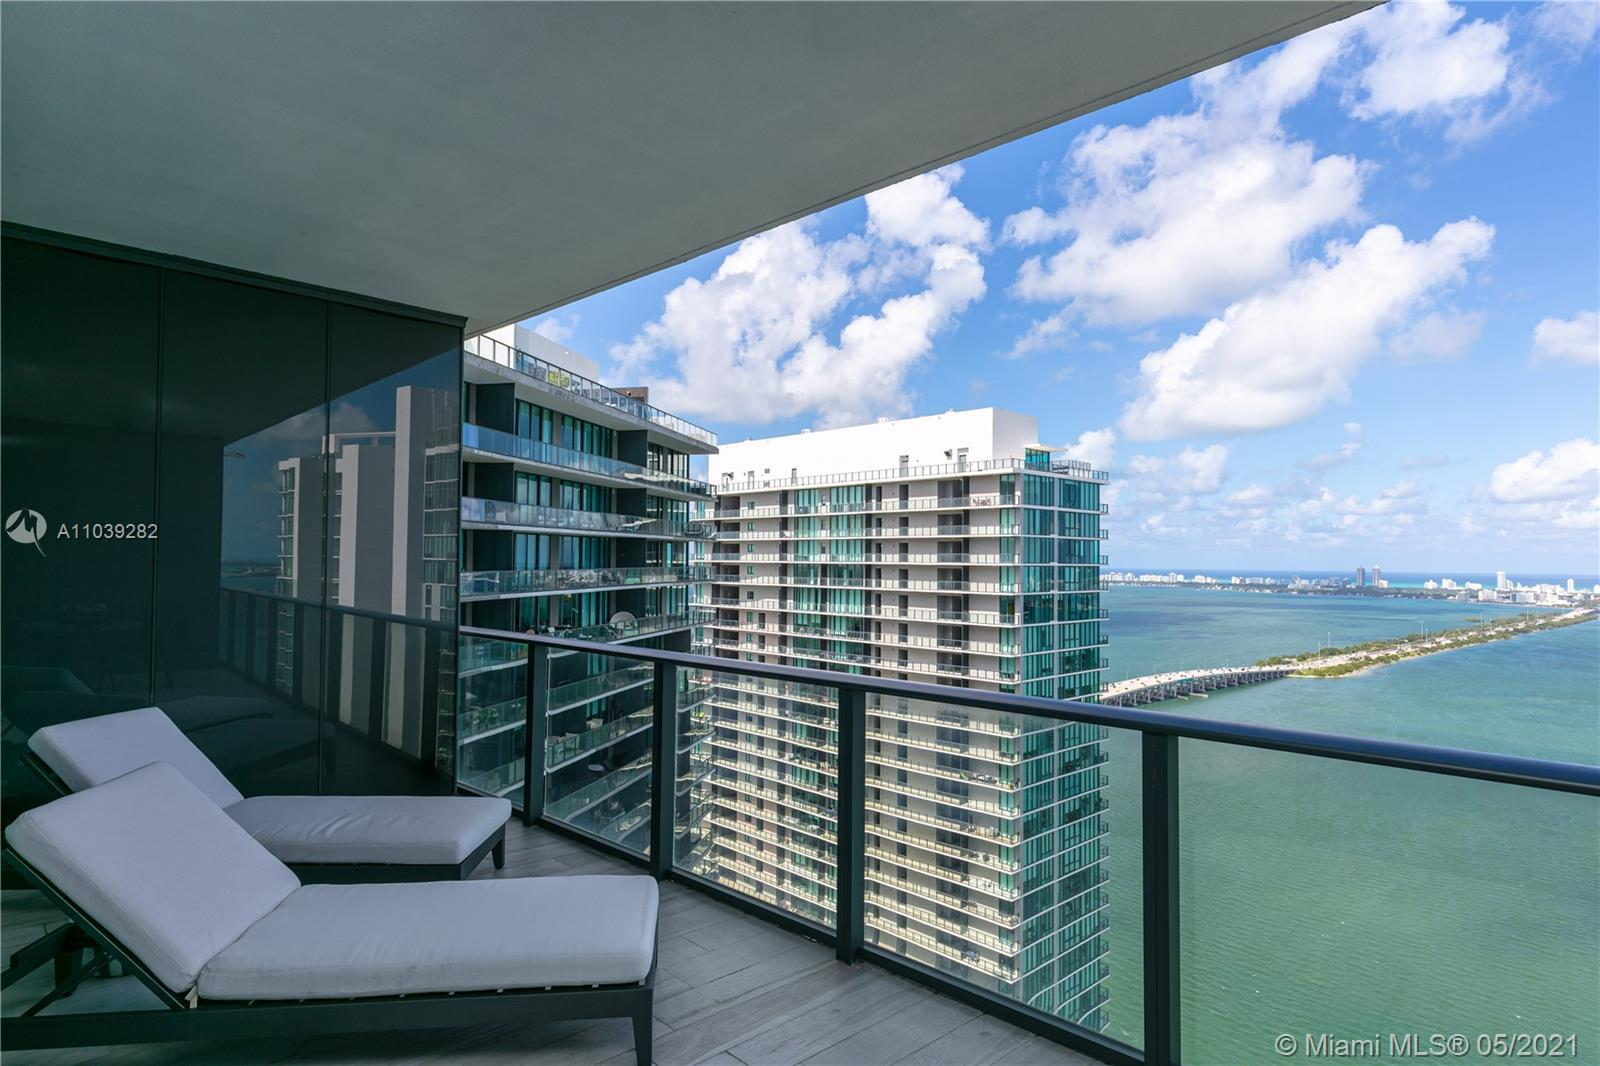 Exclusive unit located on the 45th floor in Gran Paraiso. Breathtaking views from this amazing unit